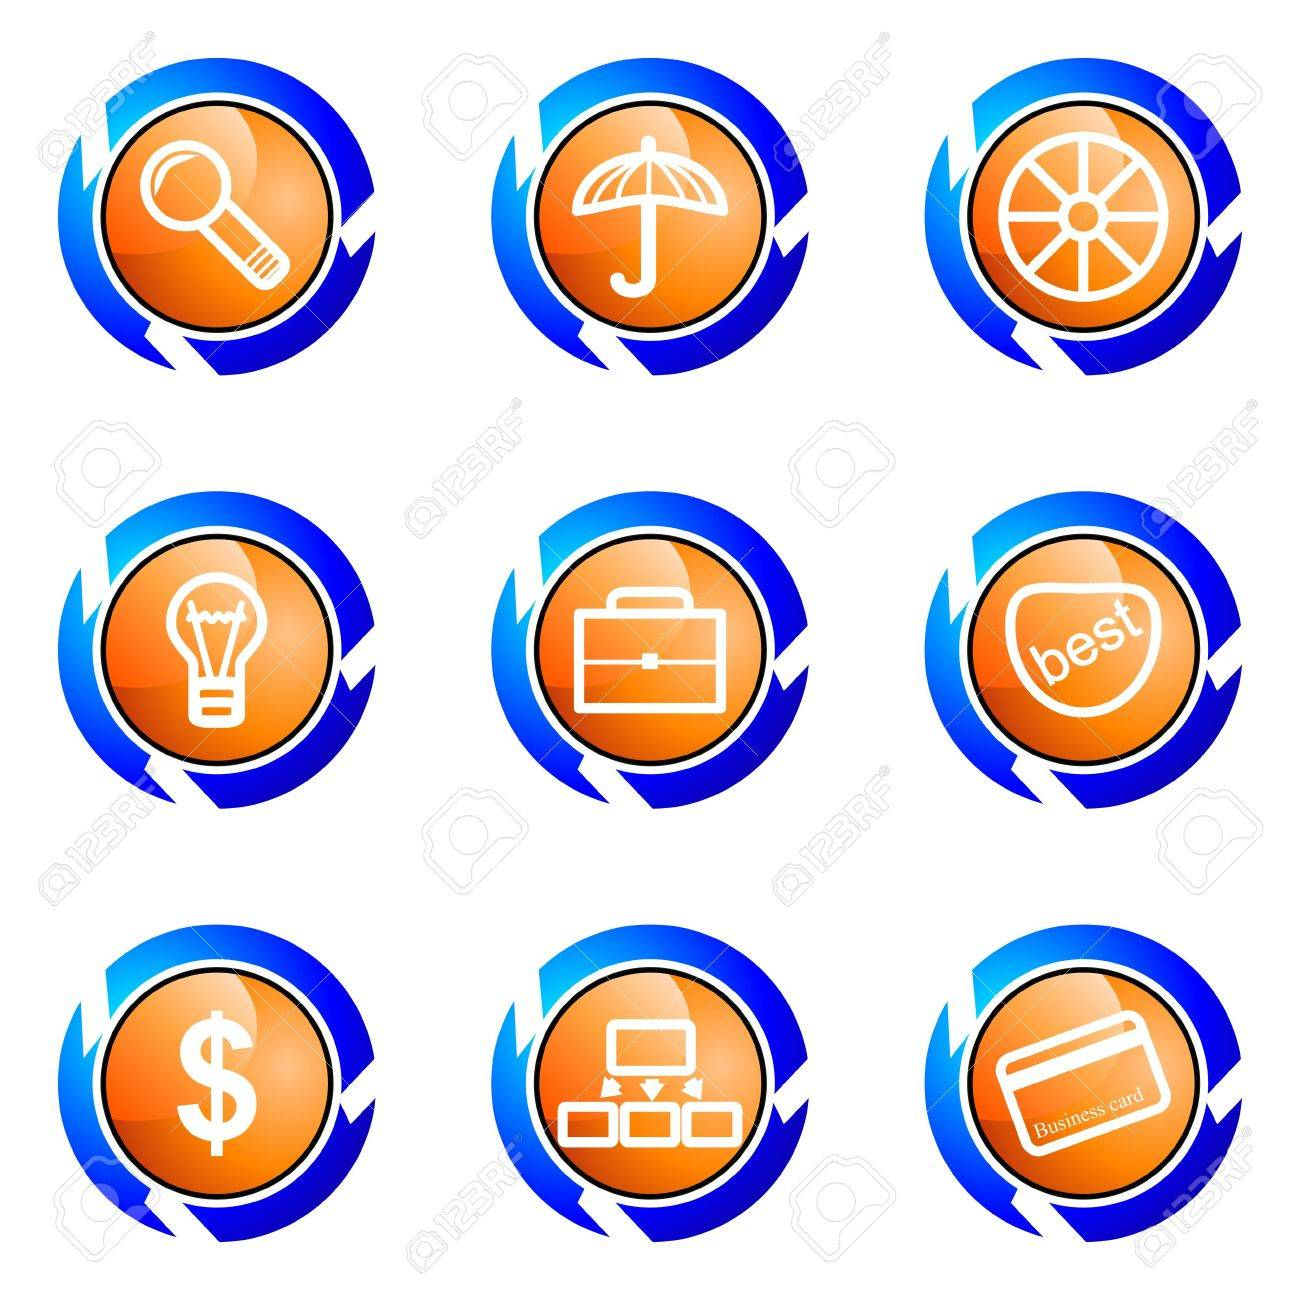 Set of 9 glossy web icons (set 24). Isolated button in various color. Stock Vector - 16682354